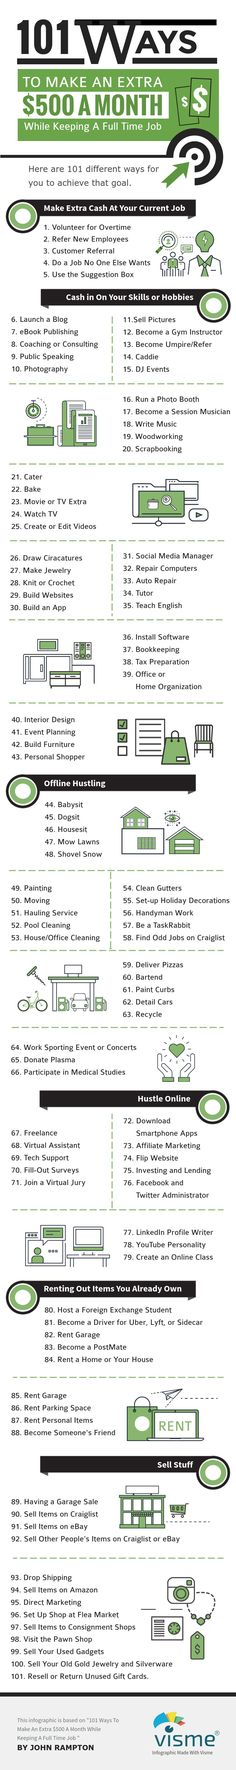 101 WAYS TO MAKE AN EXTRA $500 A MONTH WHILE KEEPING YOUR FULL TIME JOB [Infographic]